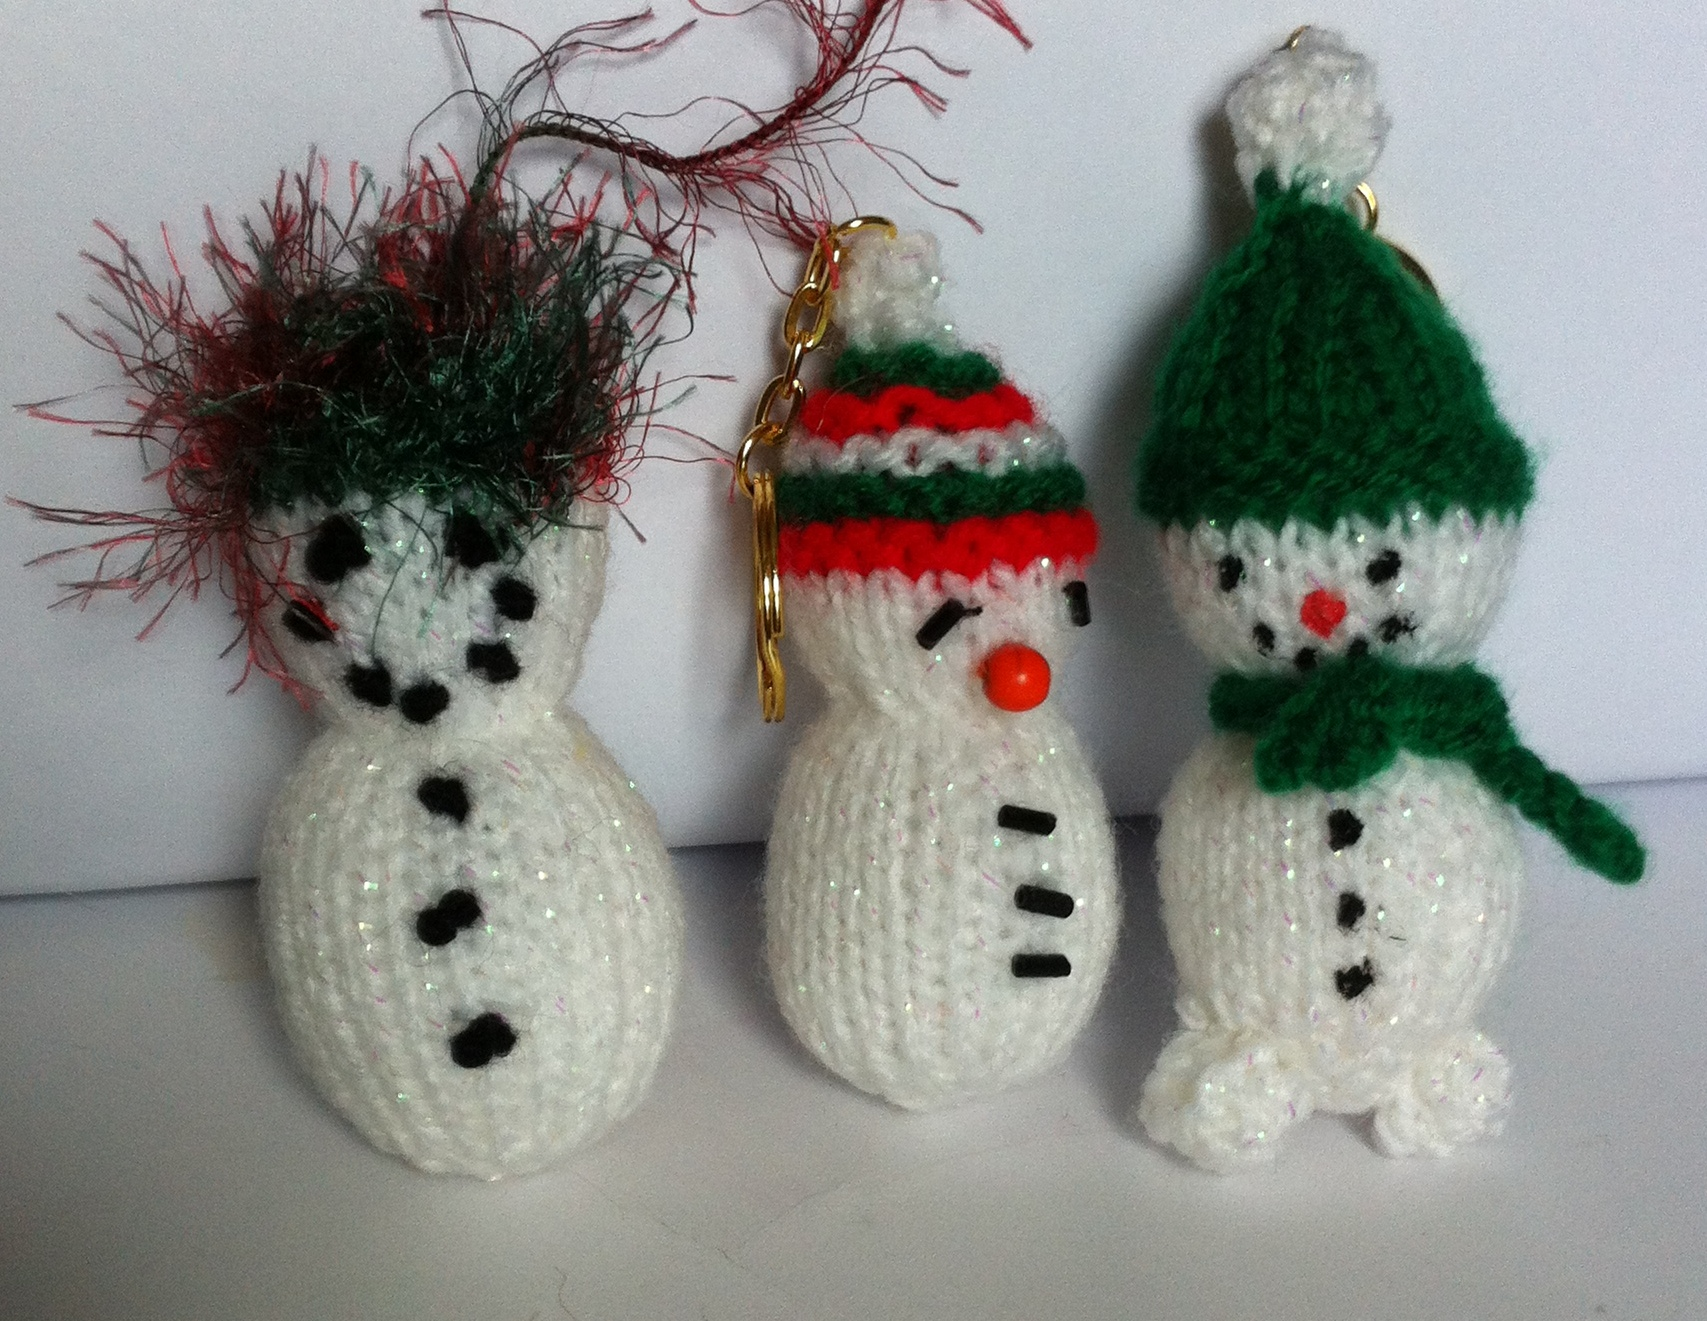 Tiny Snowman knitted keyring/tree ornament.